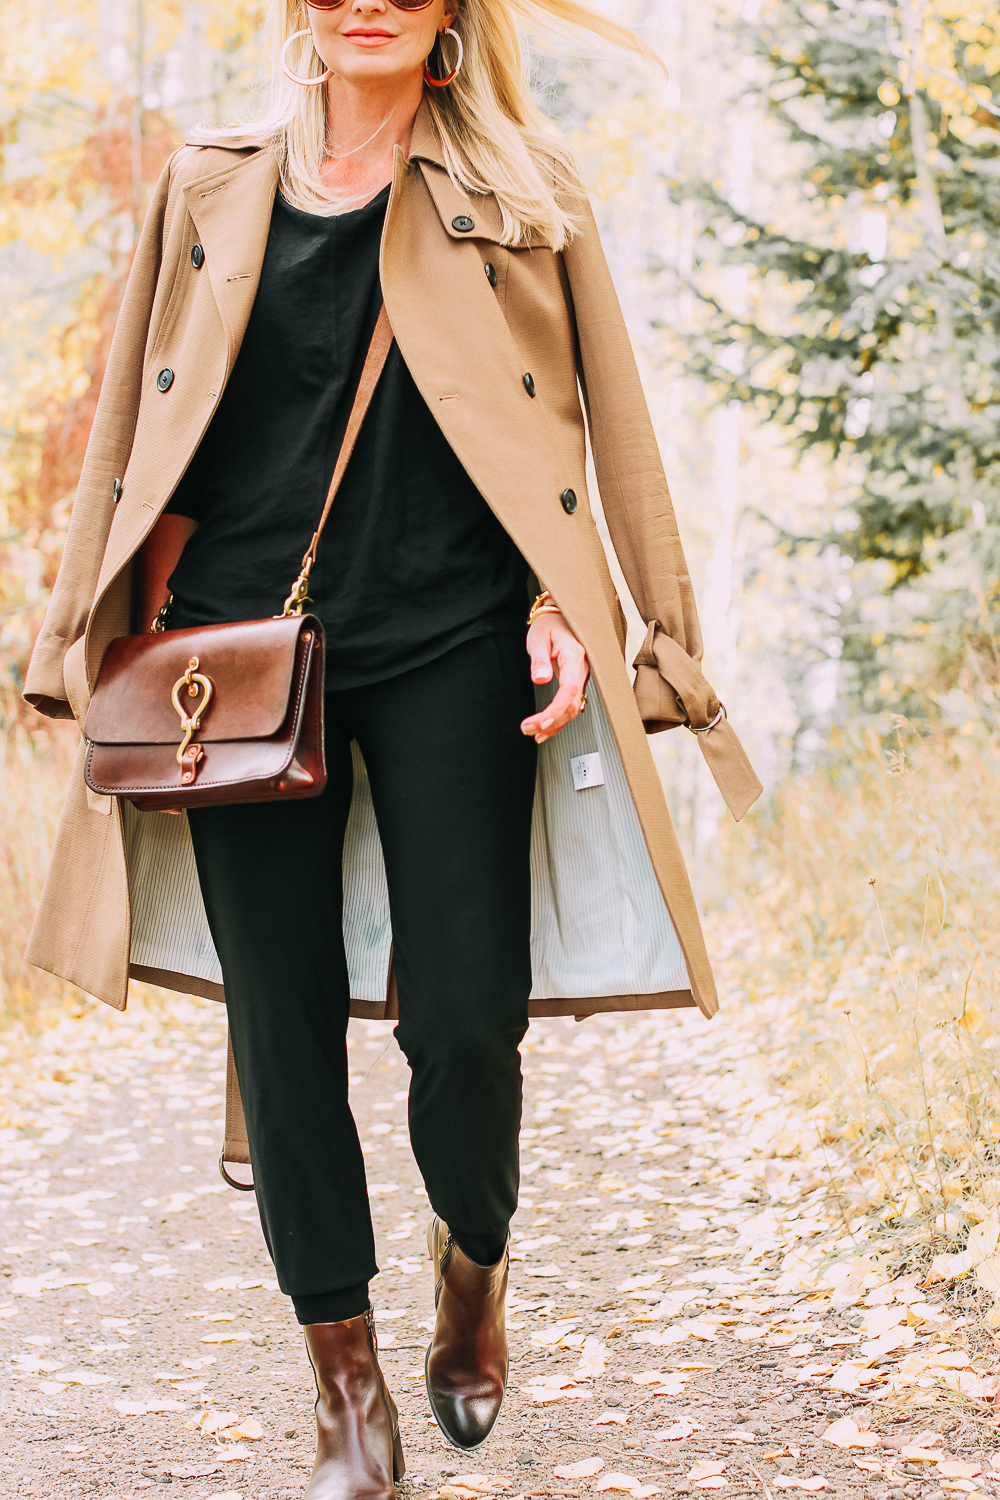 ankle boots for walking in Bison brown with low block heel and comfort, cushion technology by ECCO on fashion blogger in black joggers by Norma Kamali and black off shoulder top with brown crossbody bag